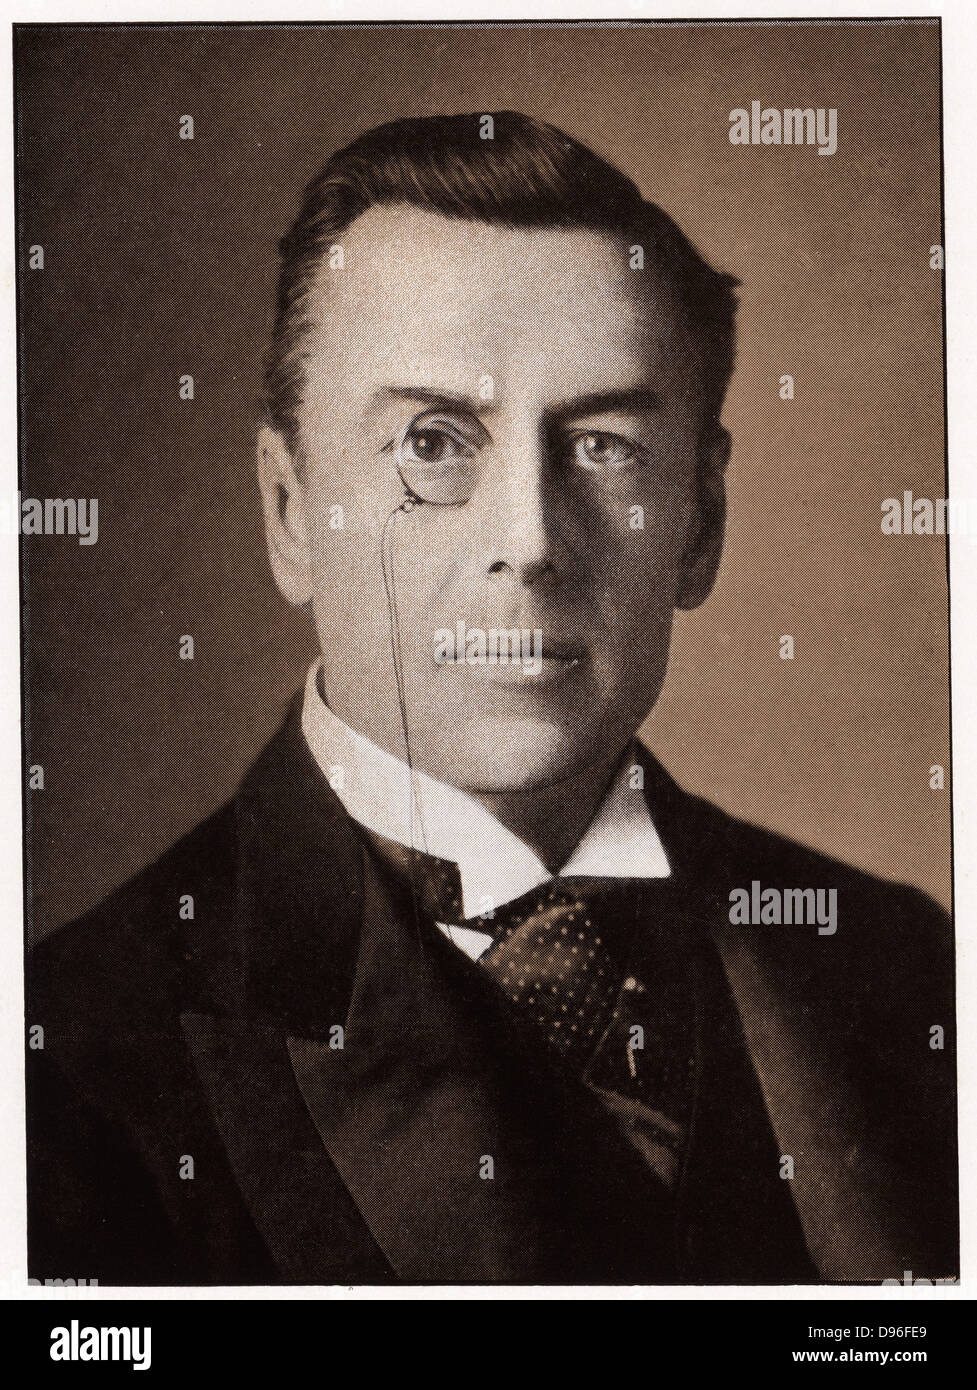 Joseph Chamberlain (1836-1914) British Liberal statesman at the time he was Secretary of State for the Colonies - Stock Image